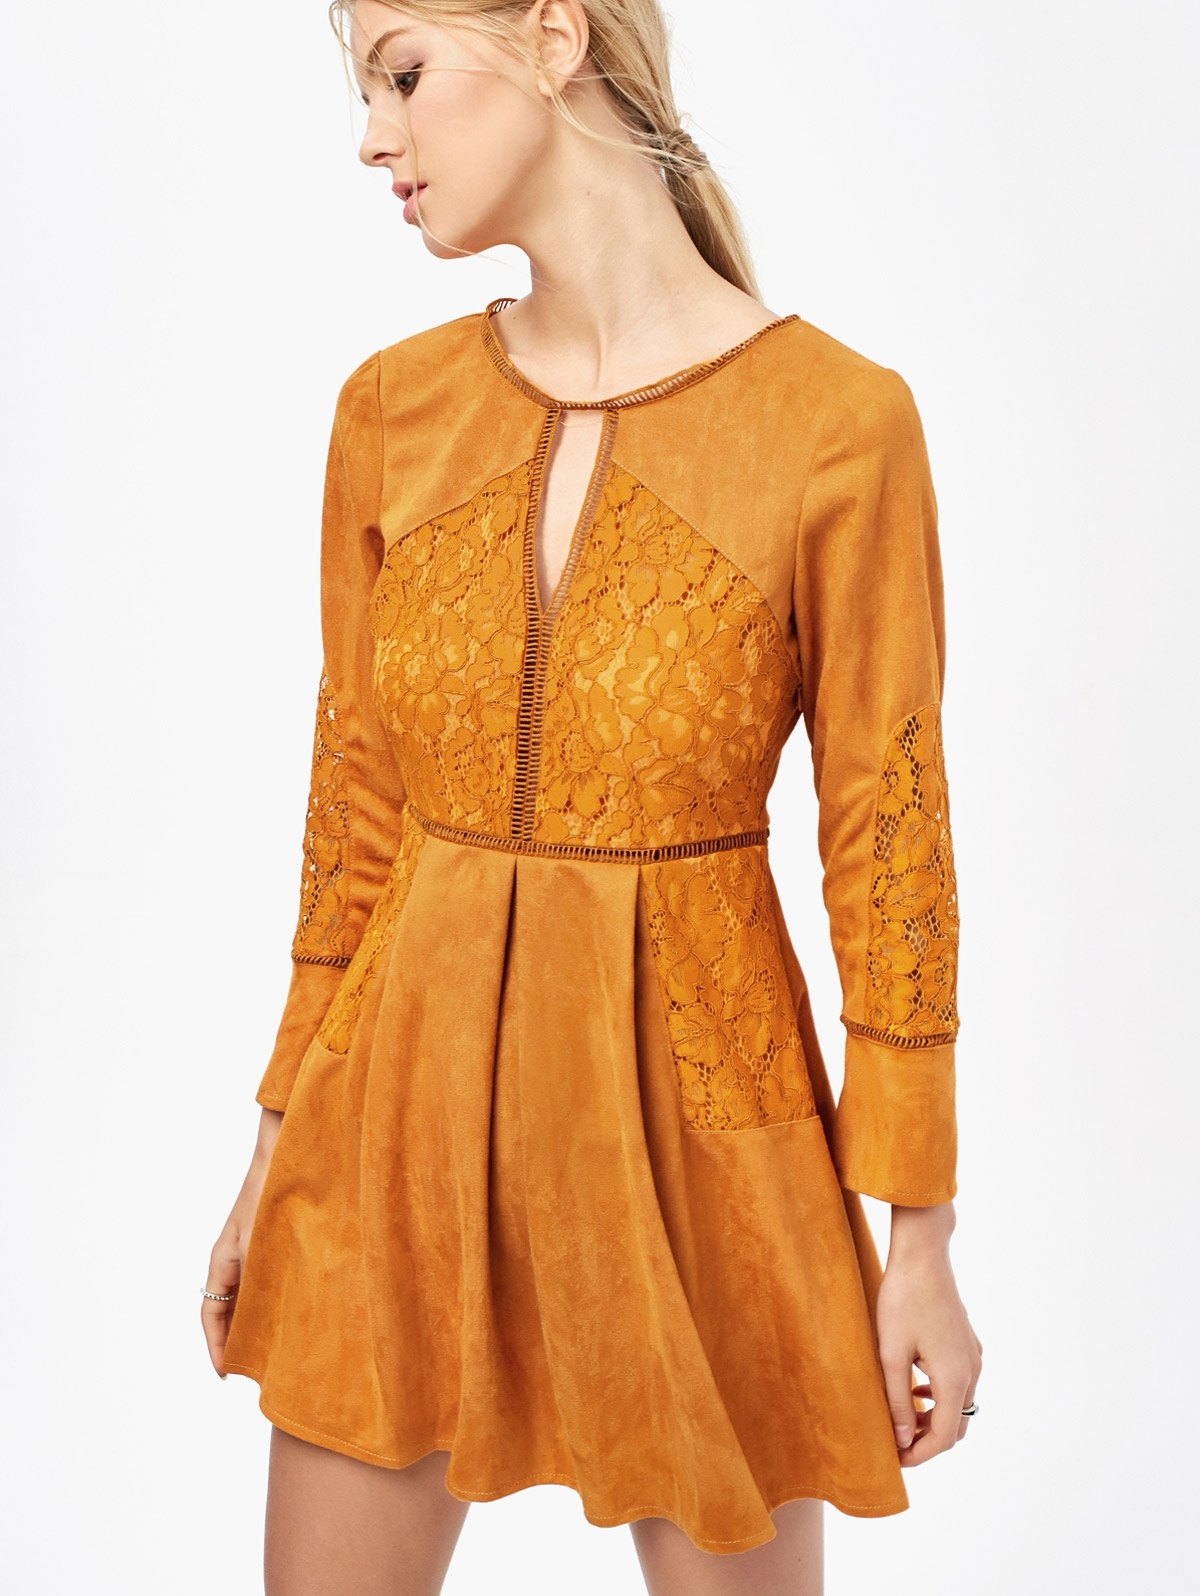 Lace Insert Cut Out Long Sleeve DressClothes<br><br><br>Size: M<br>Color: GINGER